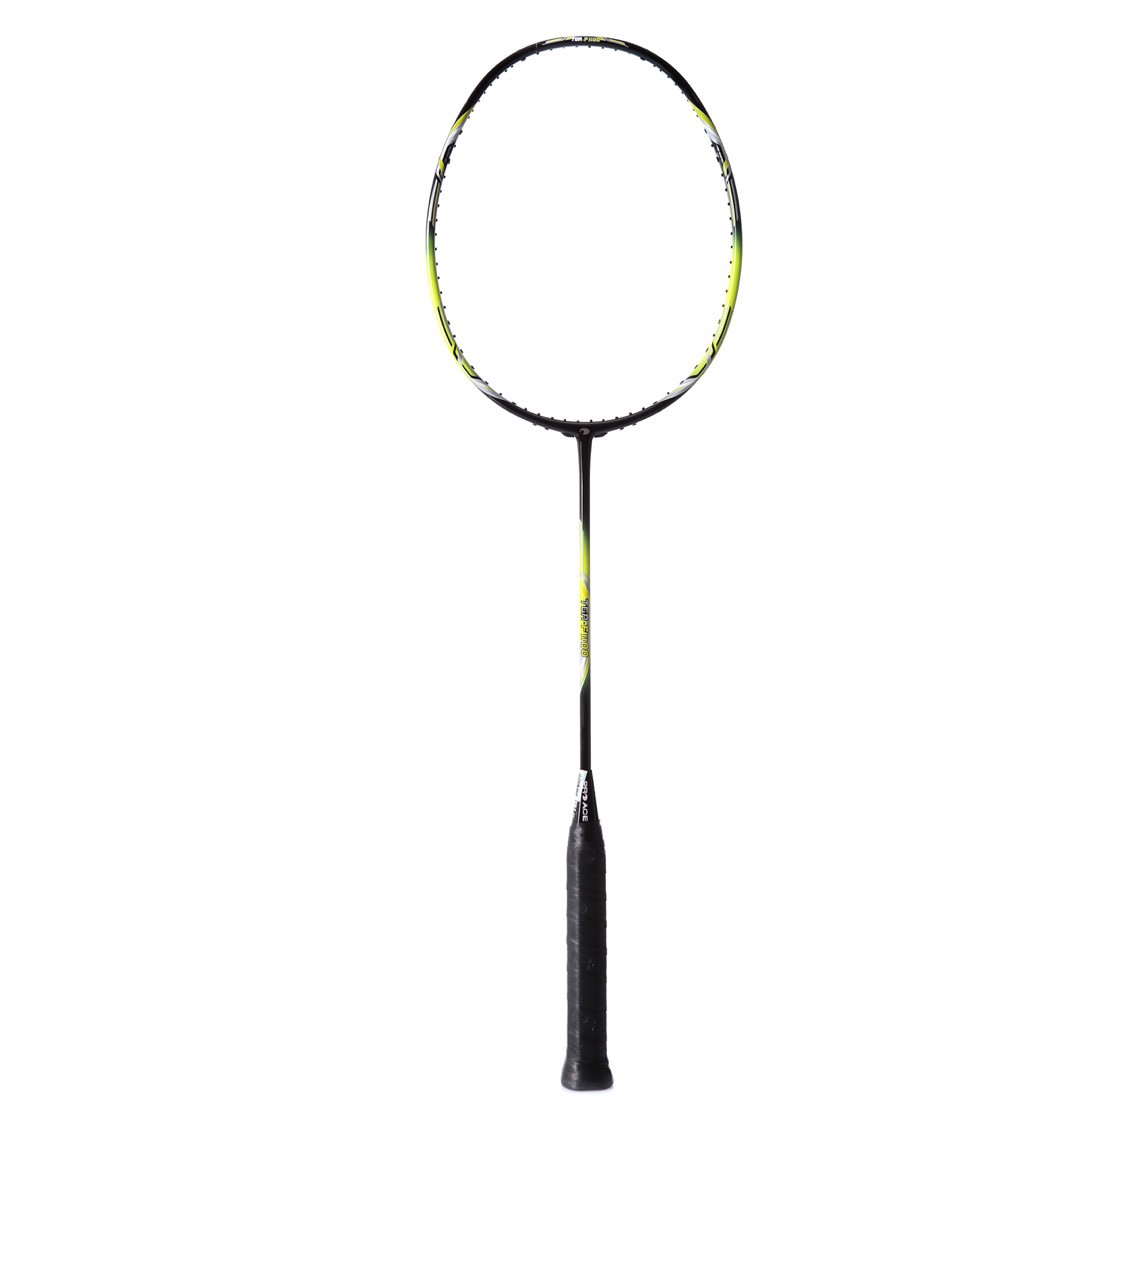 Vợt Proace Sweetspot 1100 rating